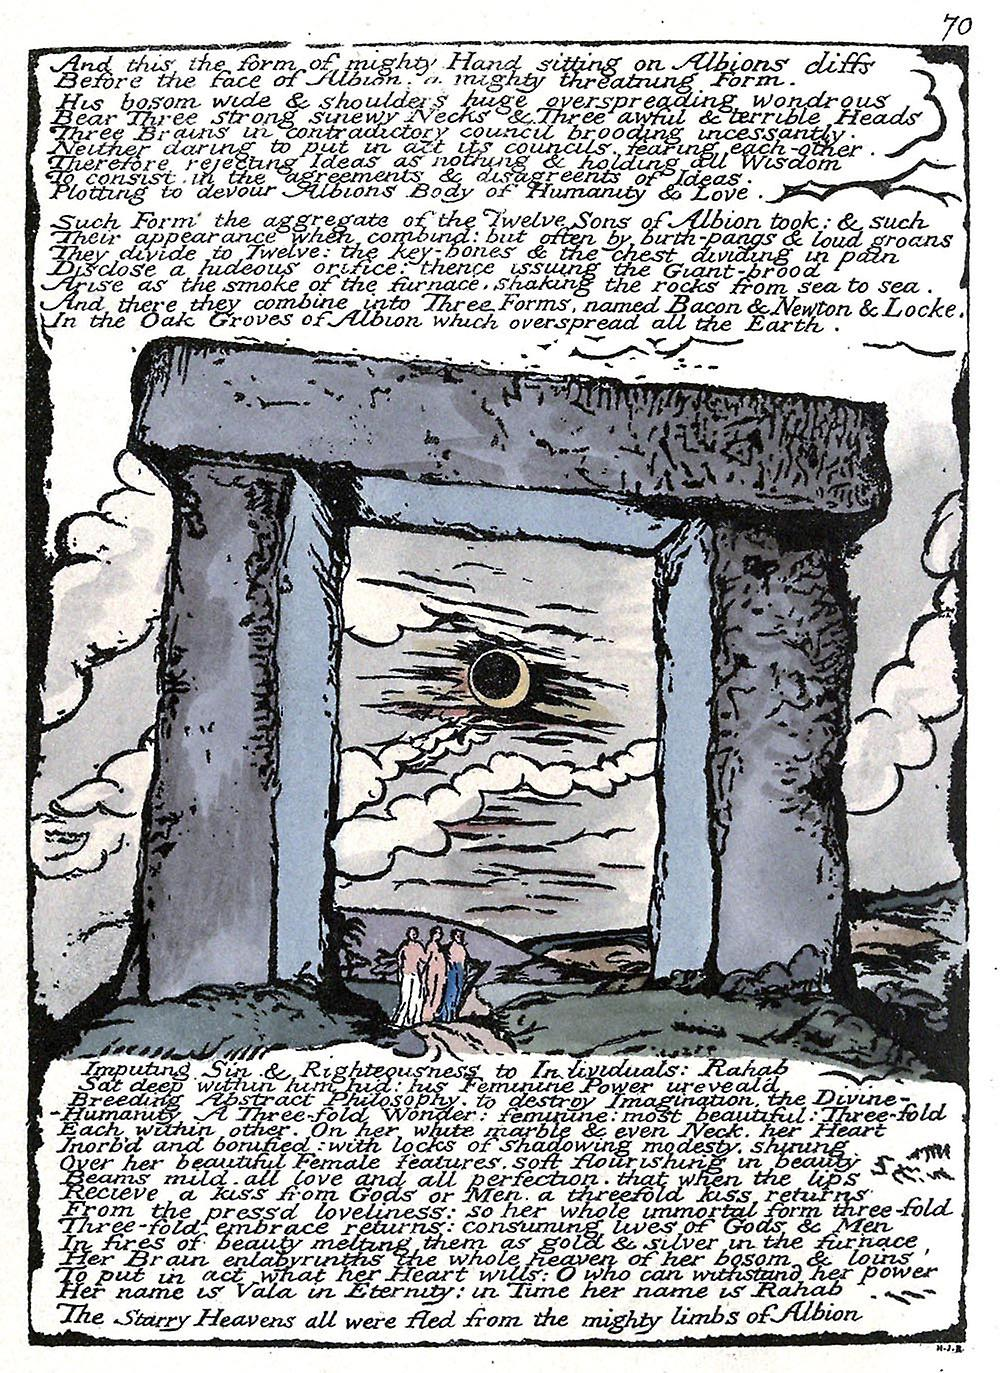 chimney sweeper william blake thesis statement William blake's the chimney sweeper 12 thesis questions william blake was accused of uttering treasonable statements about the king and.